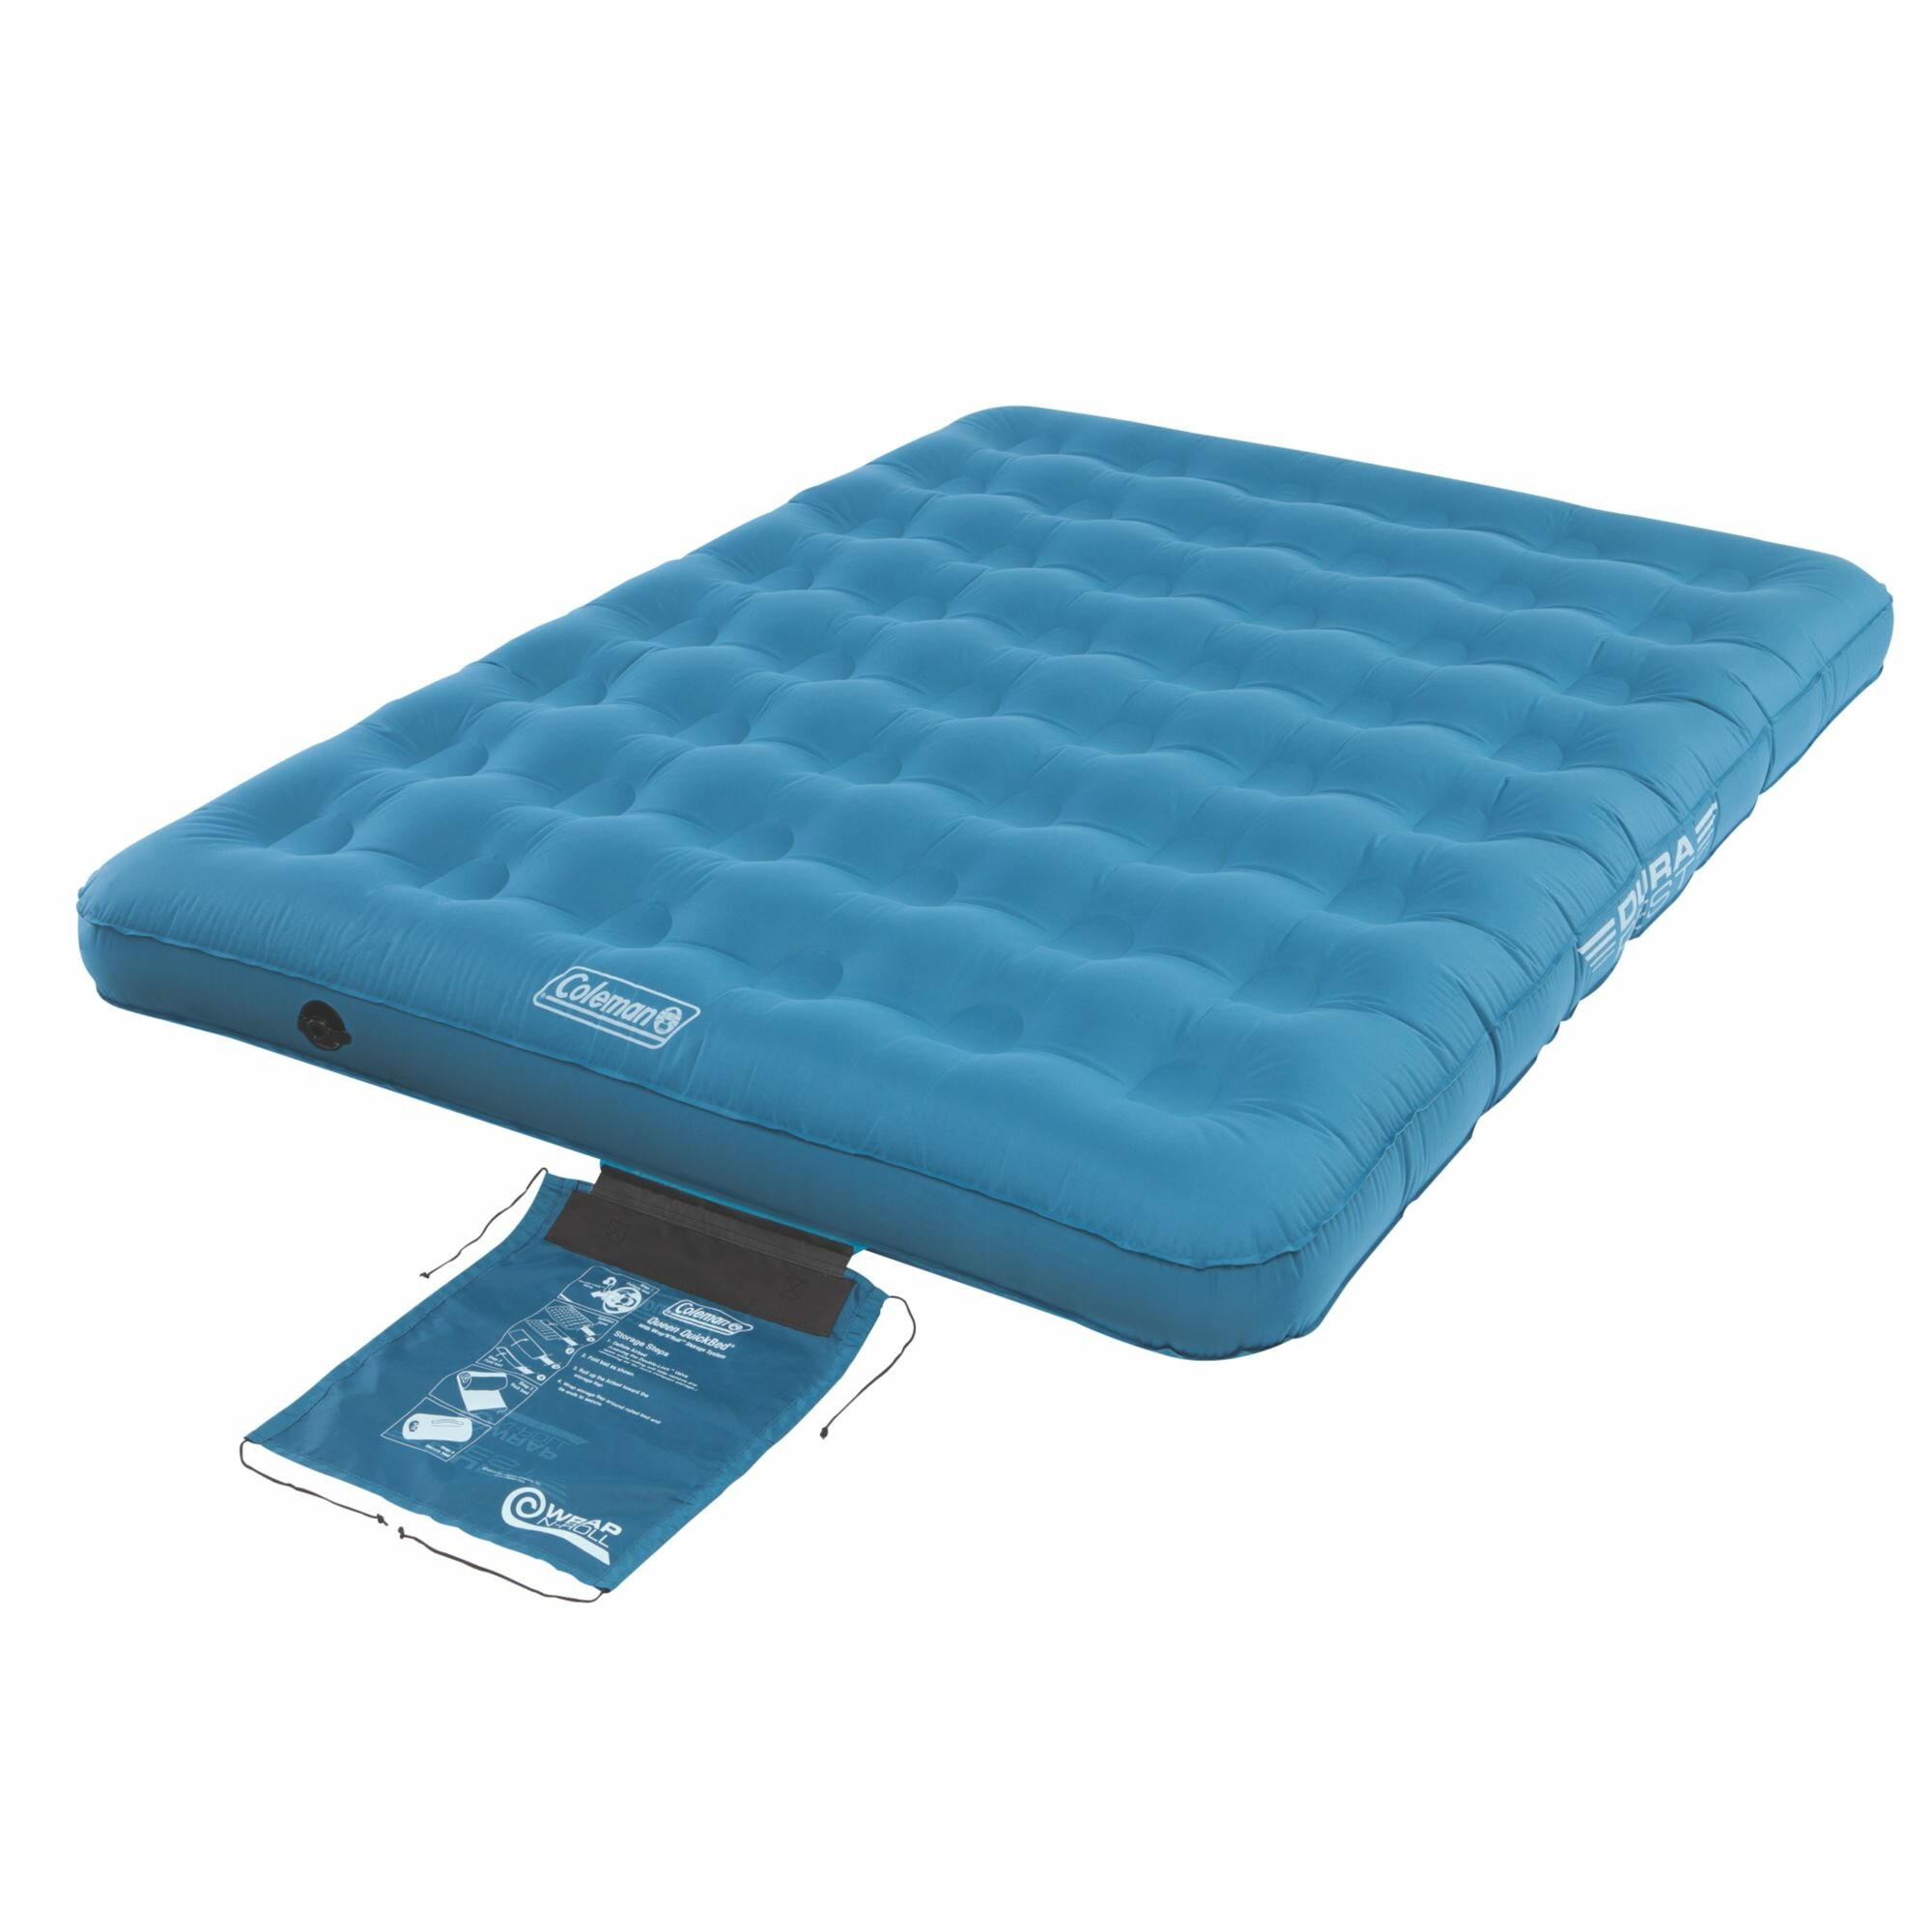 with high aerobed double air wid twin pump hei in rollaway built mattress r rollerbed